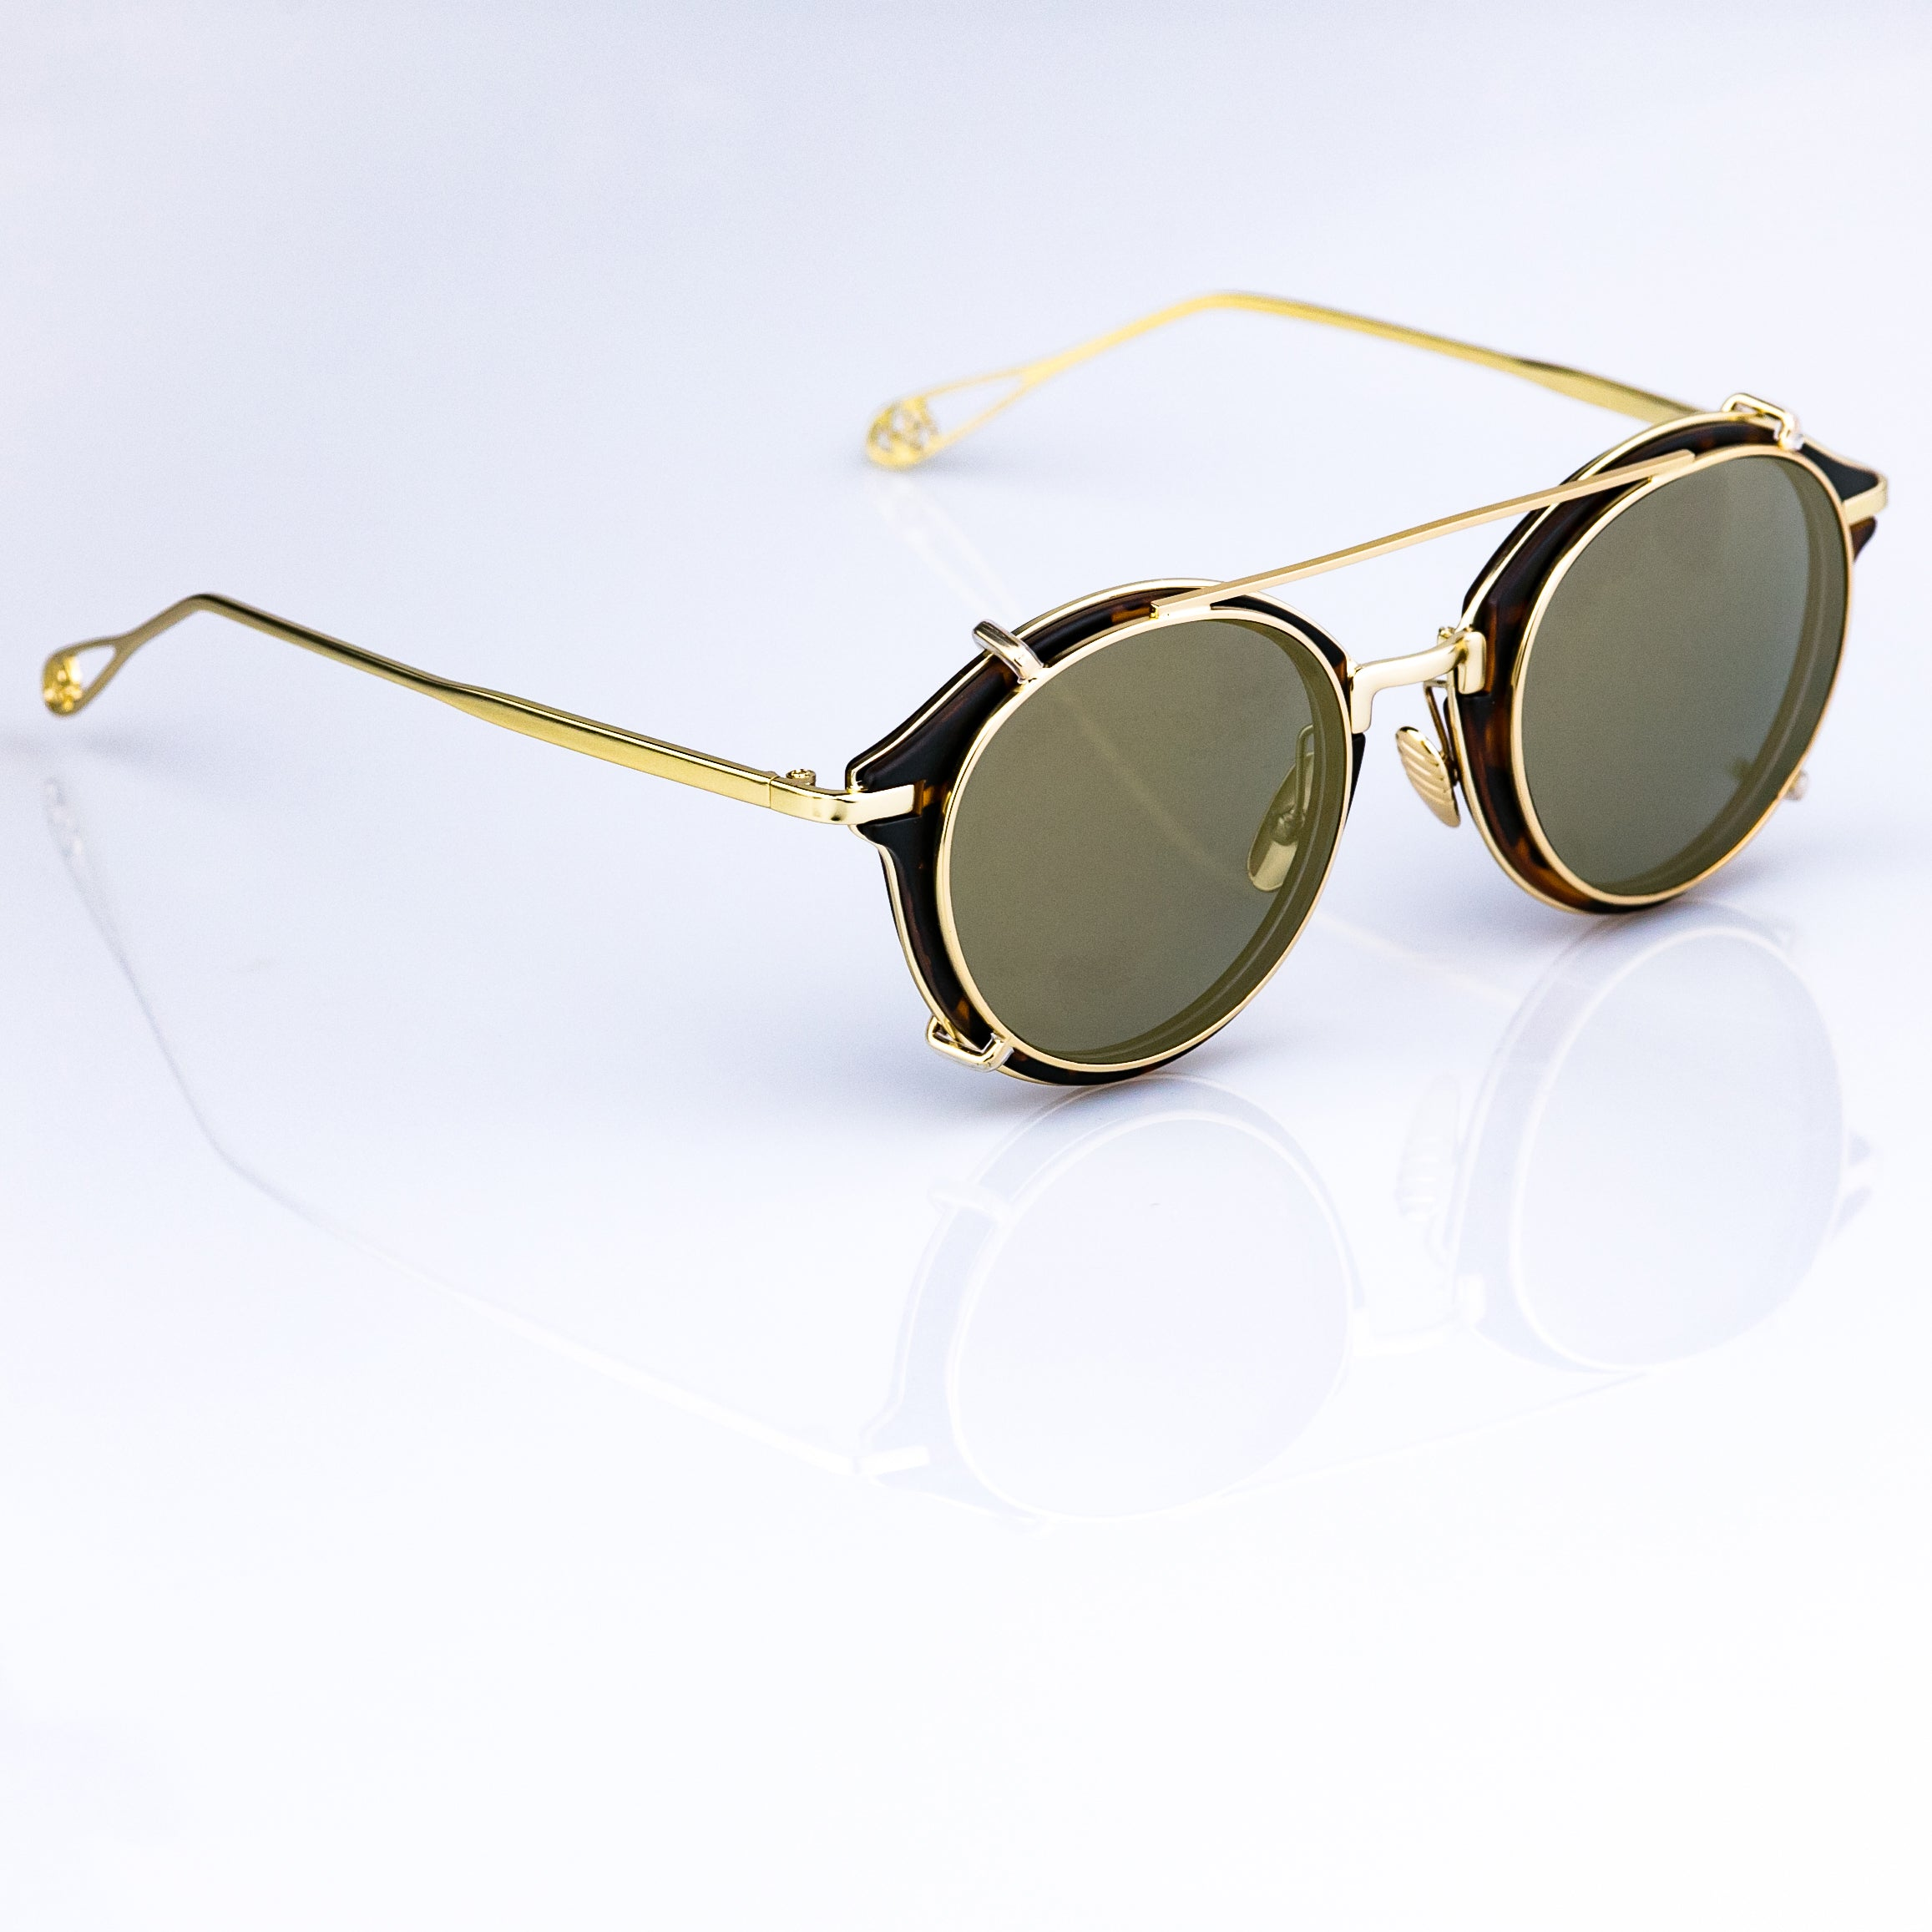 4eaa35a0af608 Hipster Sunglasses - Retro Nuovo - Gold Frame - Tan Lens